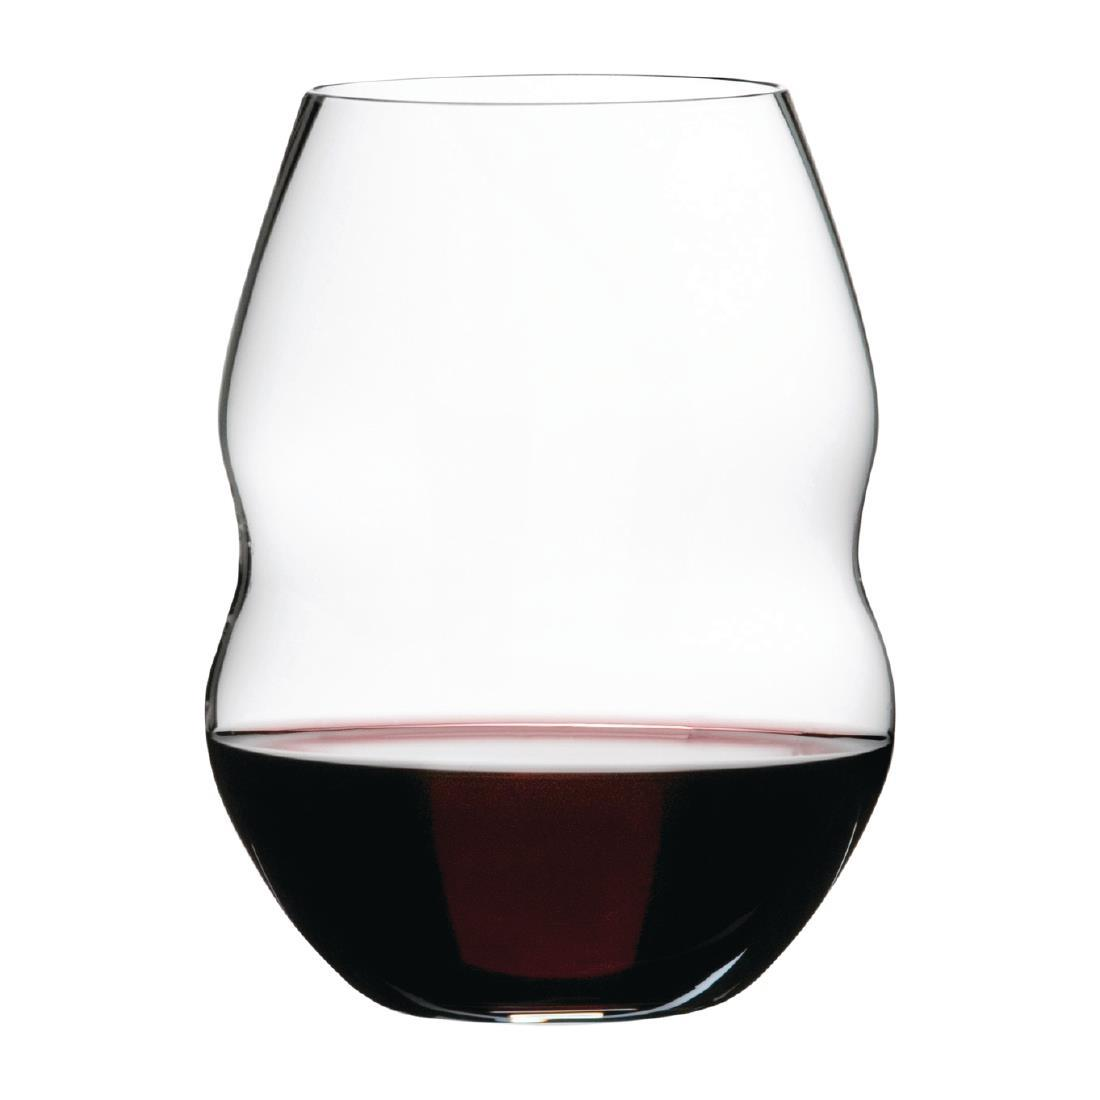 FB338 - Riedel Swirl Red Wine Glasses 580ml / 20½oz - Pack of 12 - FB338